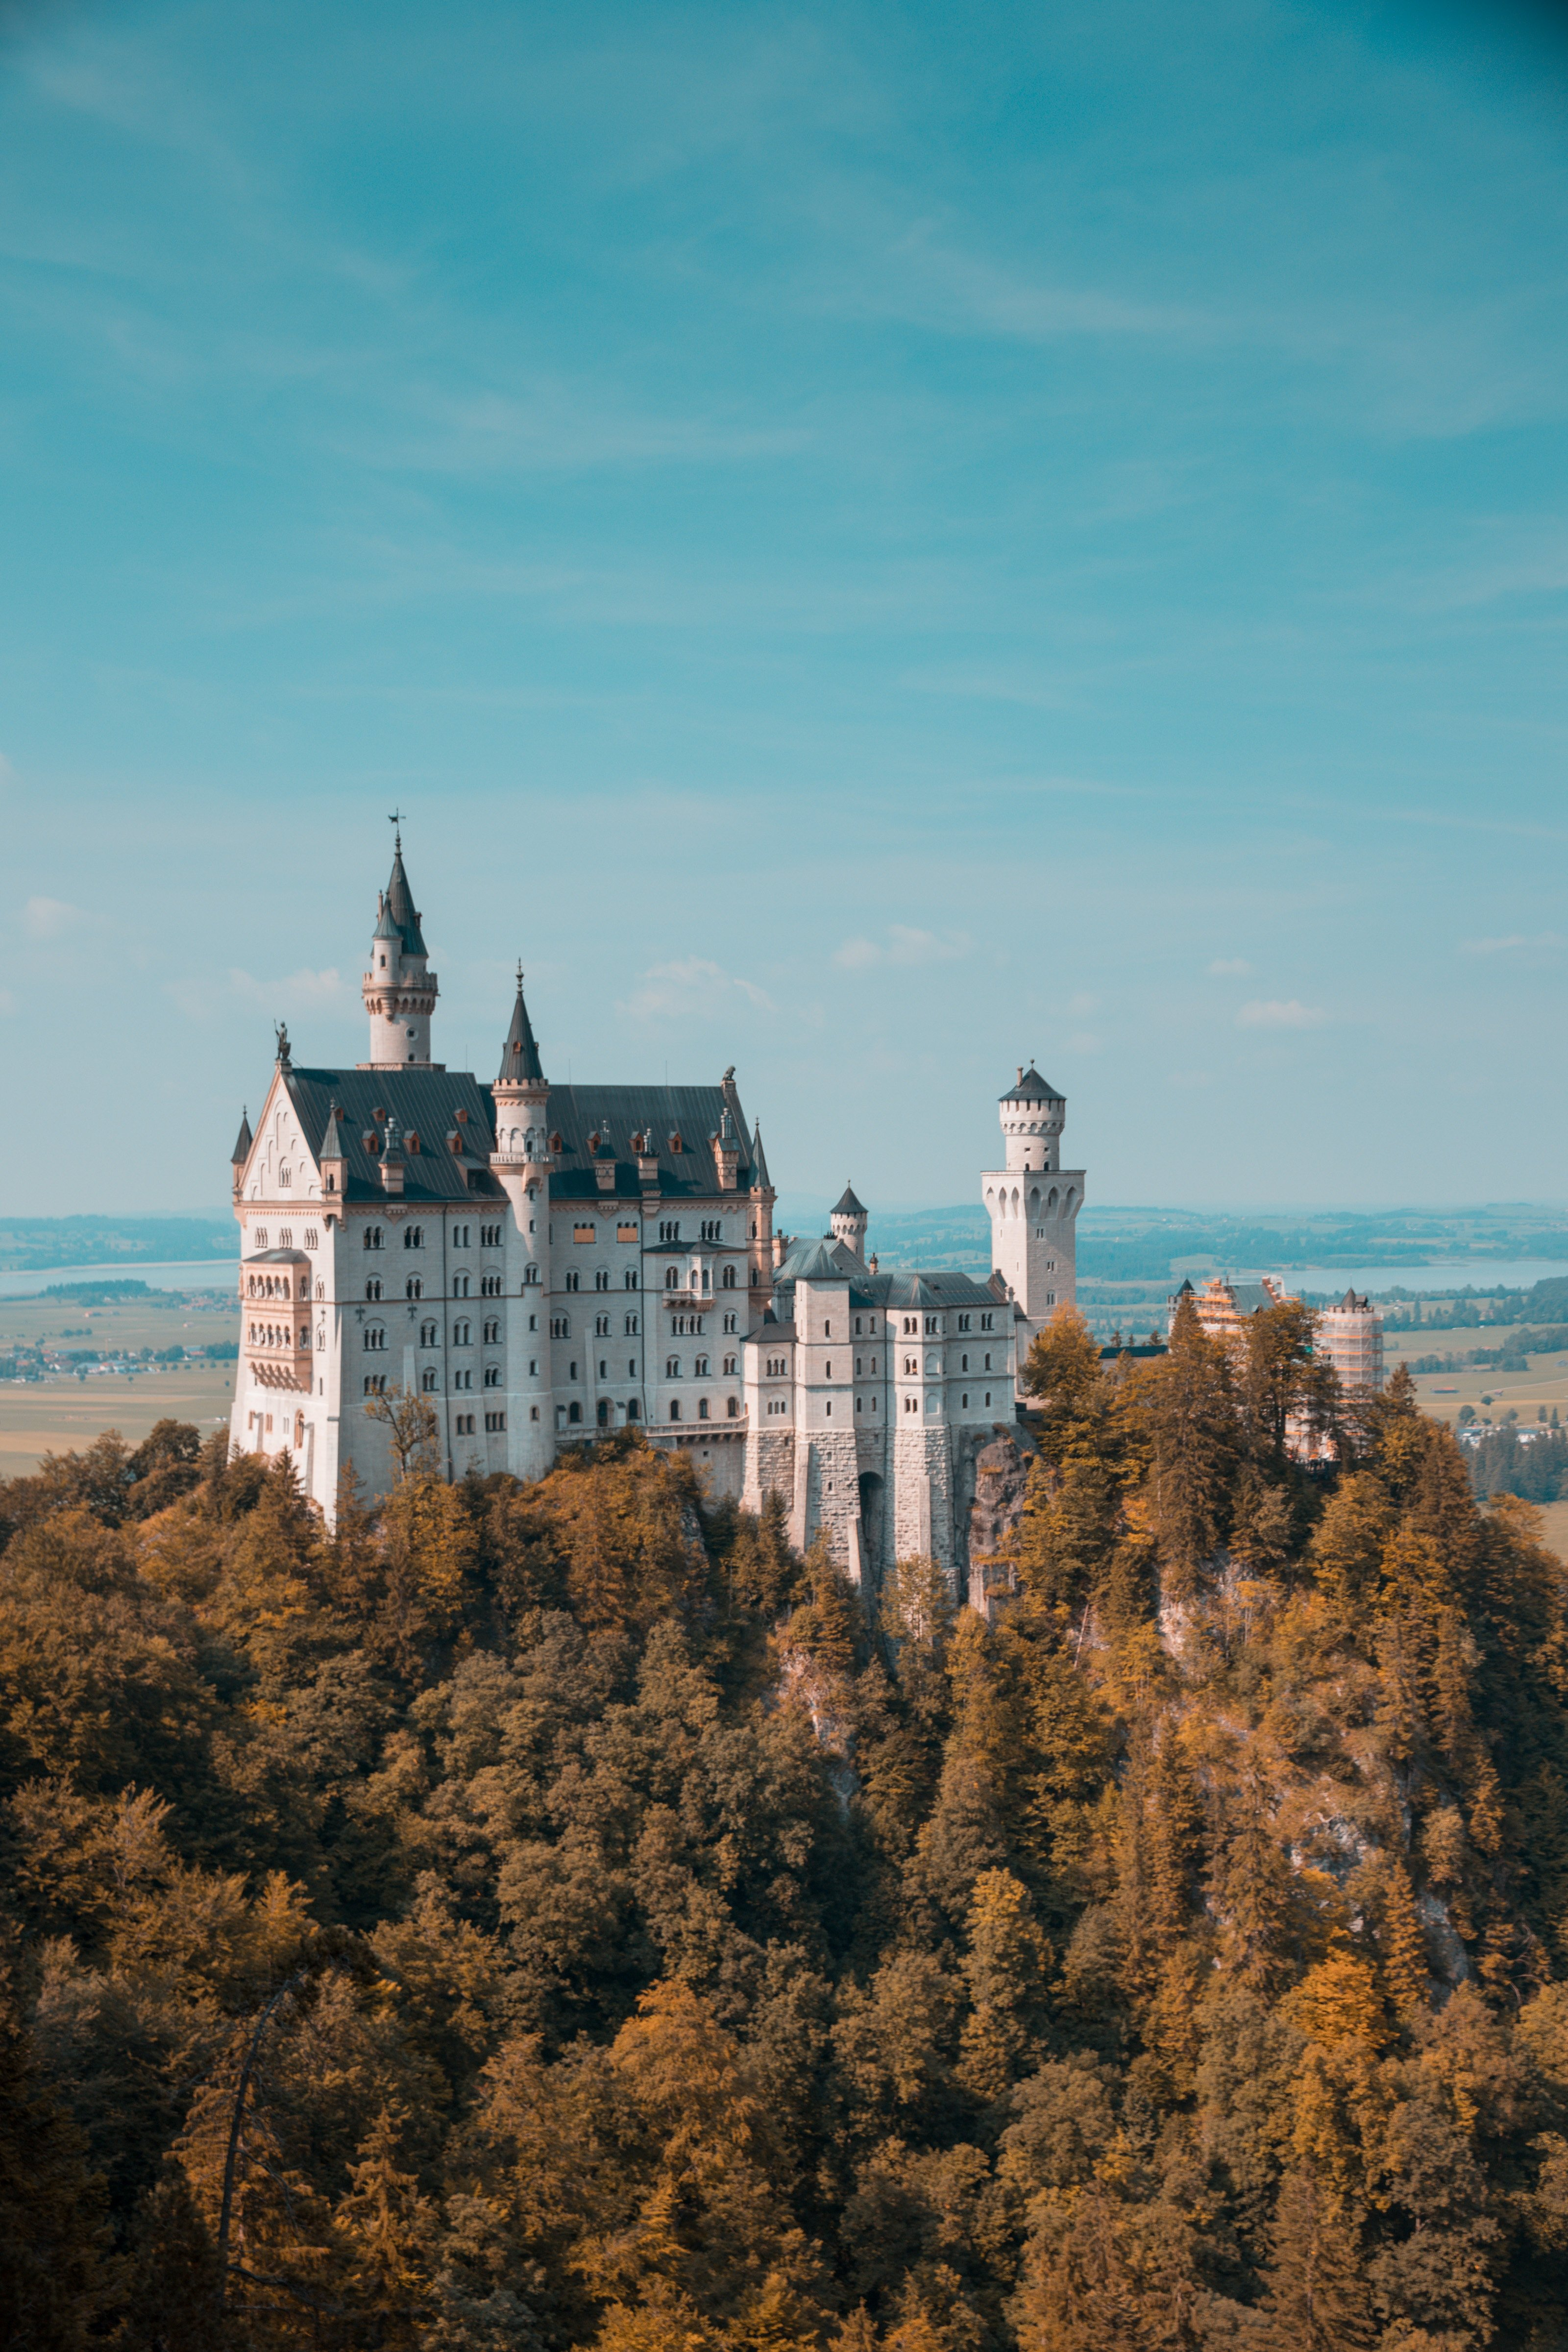 susi-castle-lived-in-germany-photo-by-eric-marty-780304-unsplash